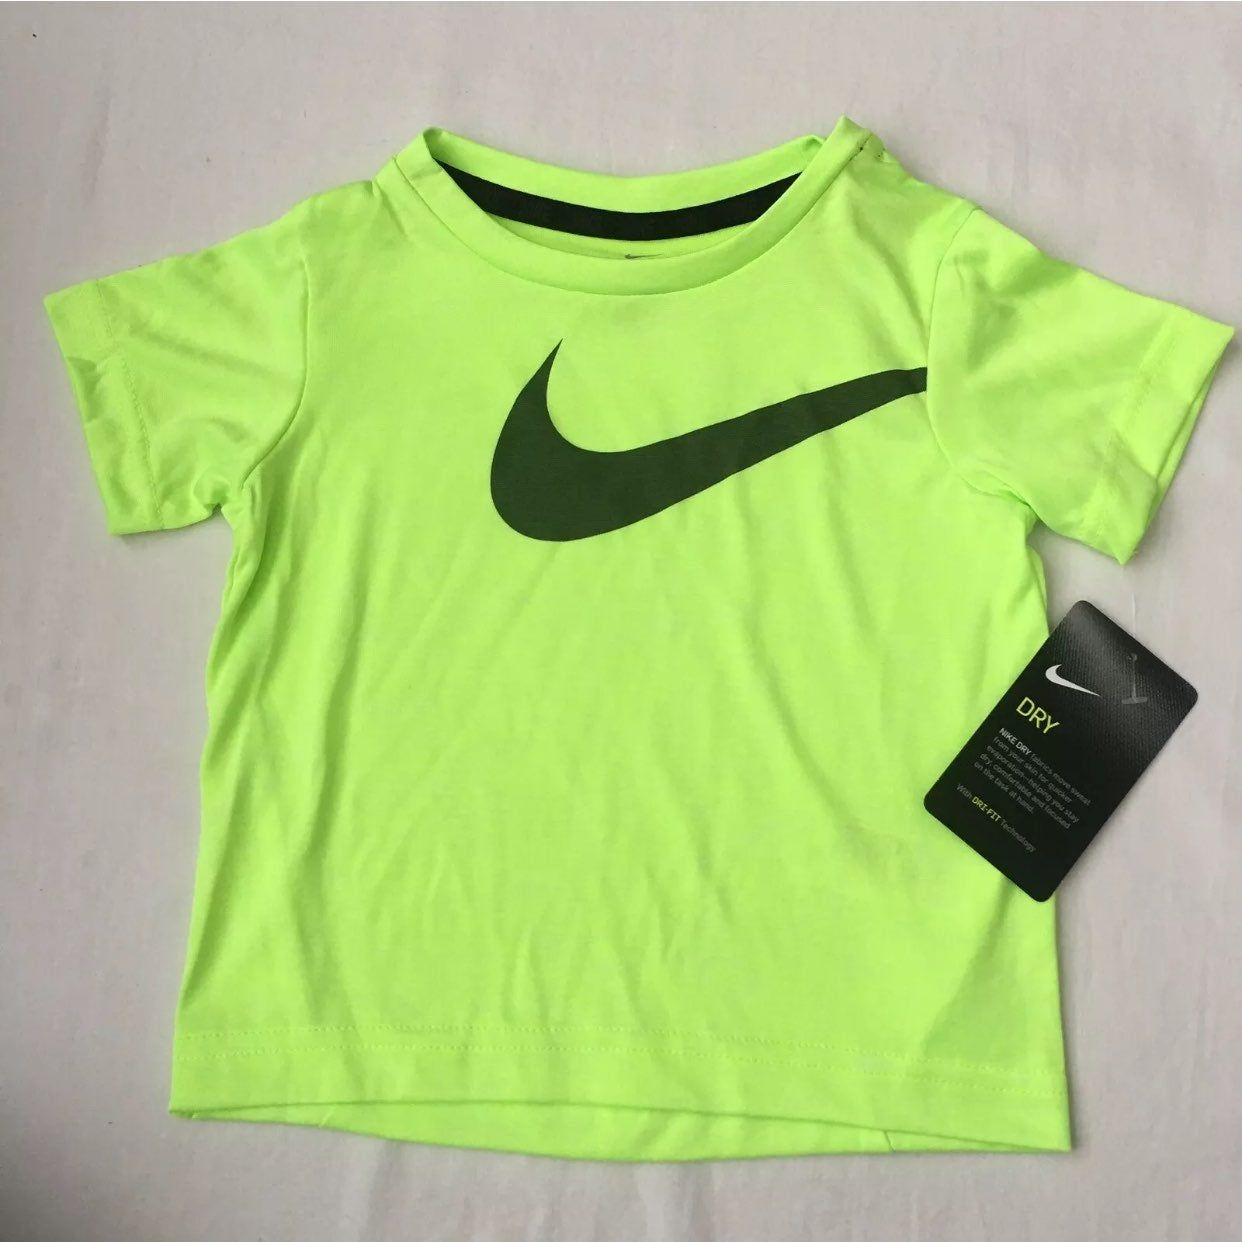 New With Tags Nike Athletic Short Sleeved Shirt Neon Yellow Volt Dri Fit Material Moisture Wicking Tagless Inside Style Nike Neon Kids Shirts Neon Yellow